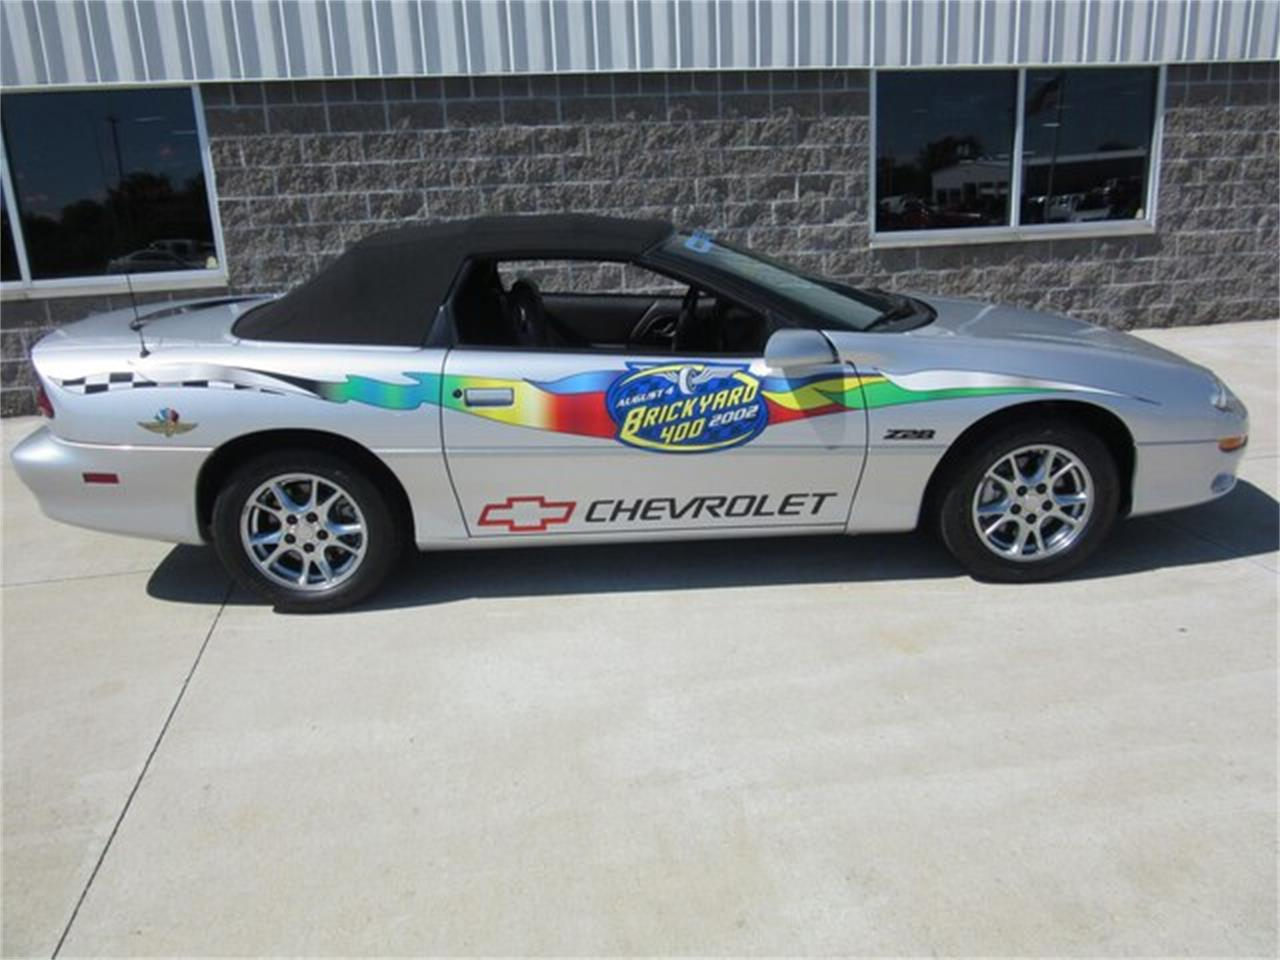 2002 Chevrolet Camaro (CC-1202303) for sale in Greenwood, Indiana